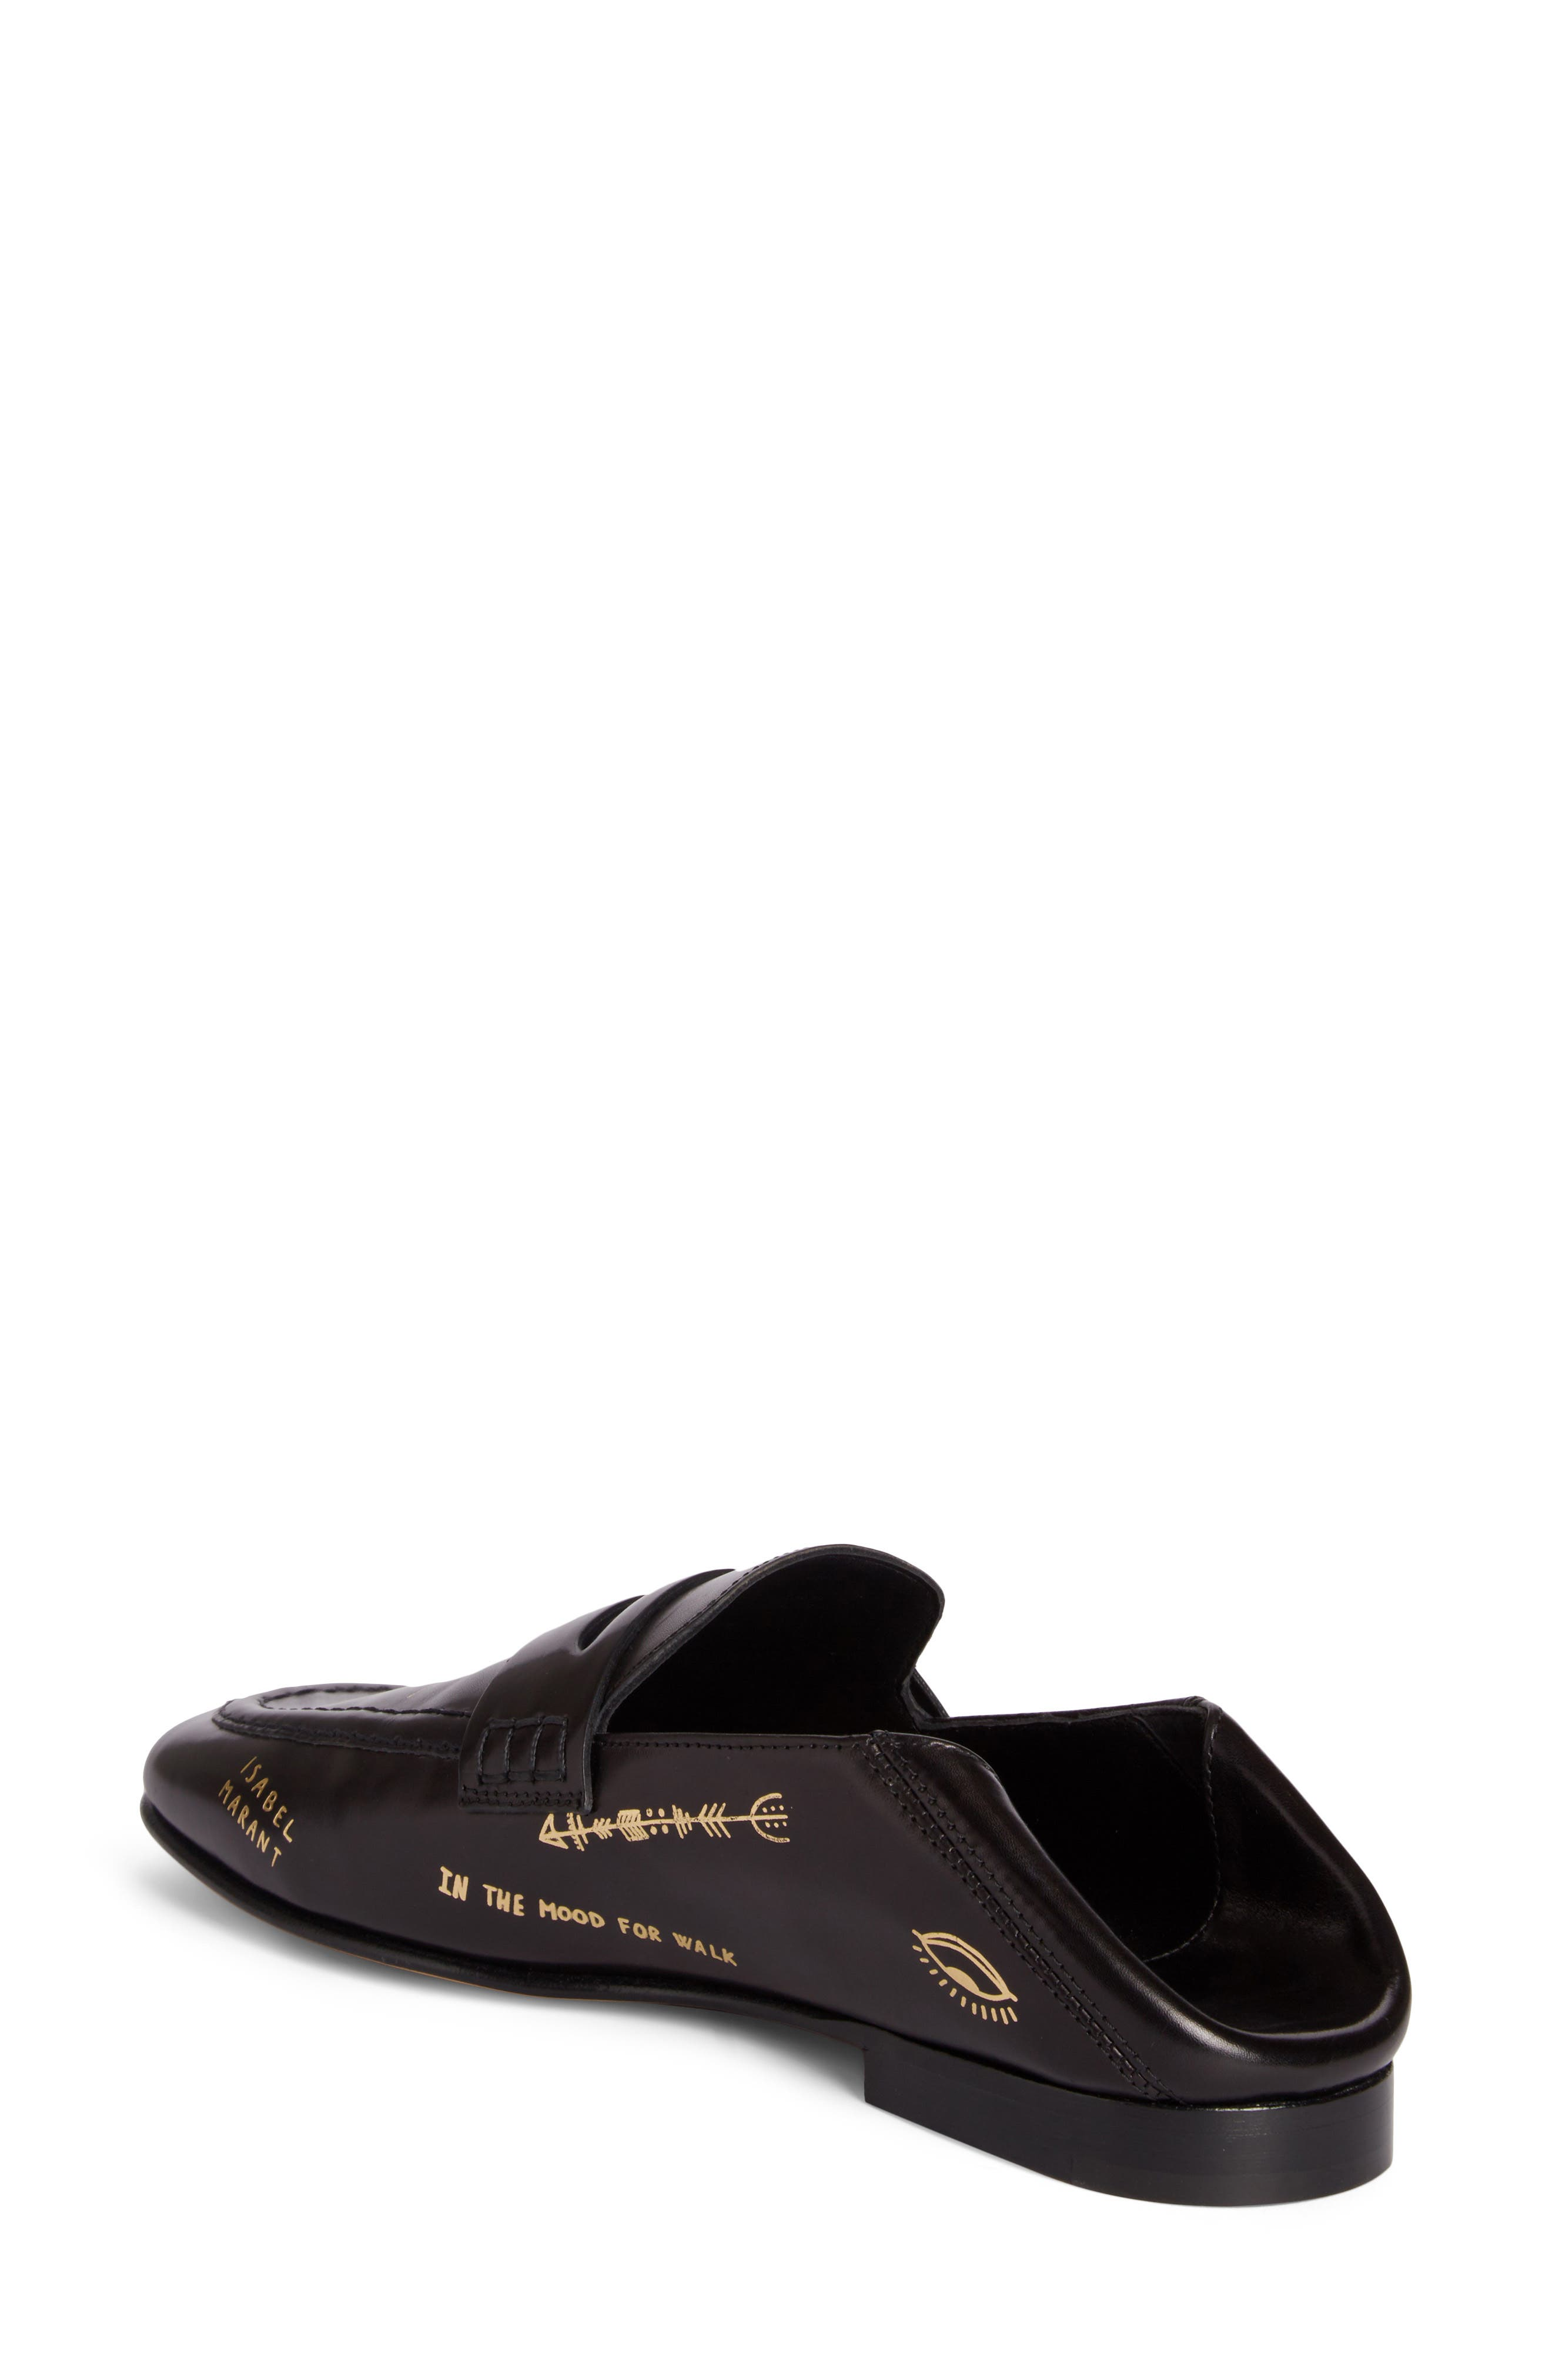 Alternate Image 3  - Isabel Marant Fezzy Print Convertible Loafer (Women)